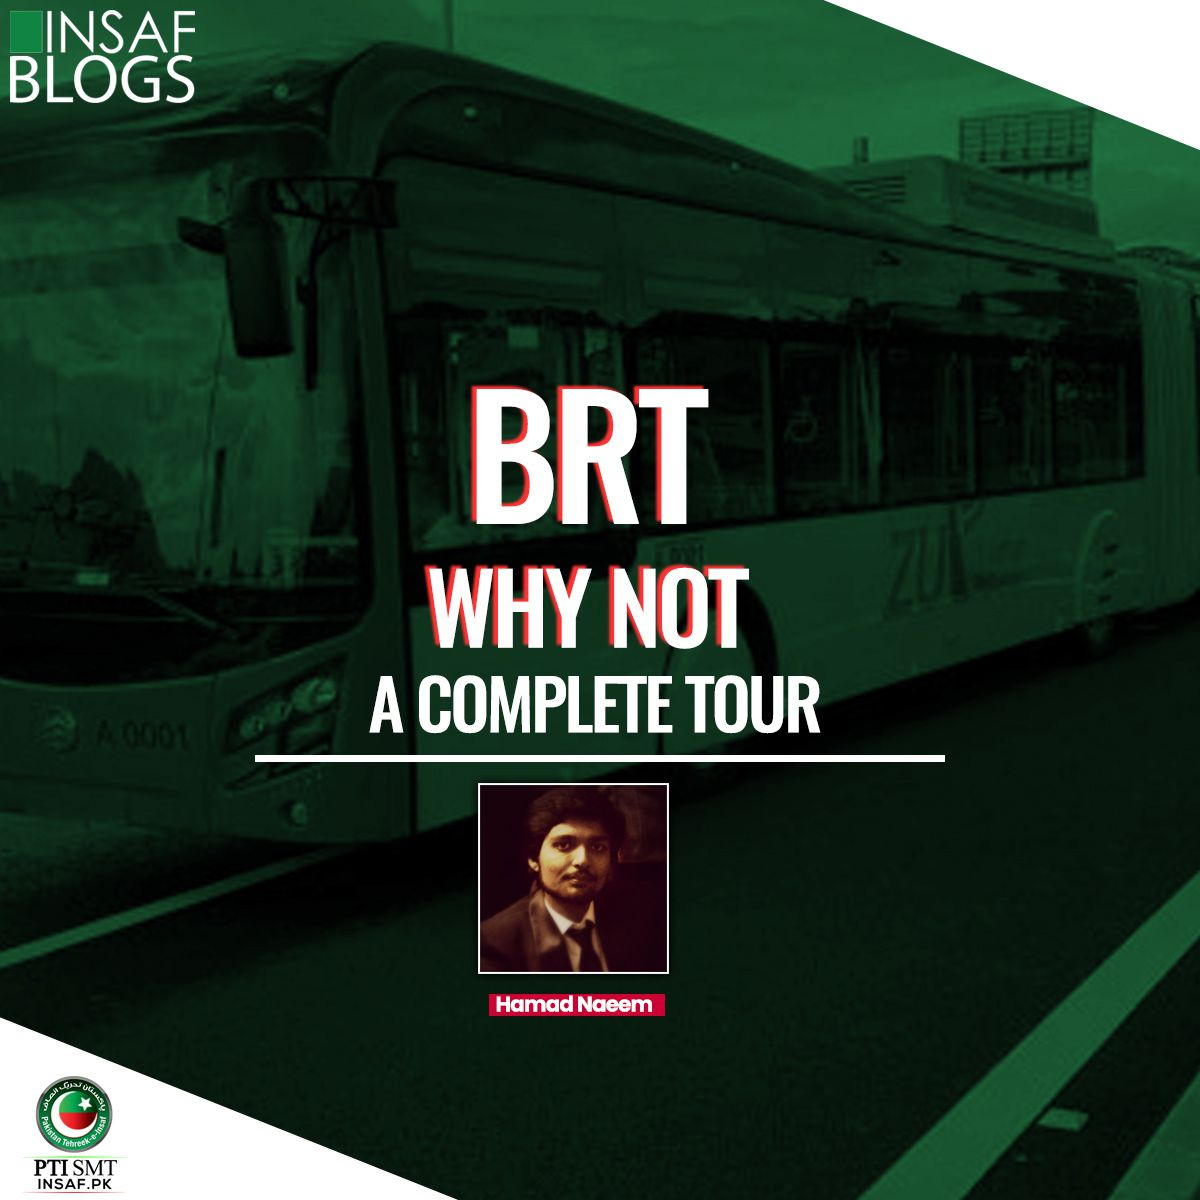 BRT-why-not-insaf-blog